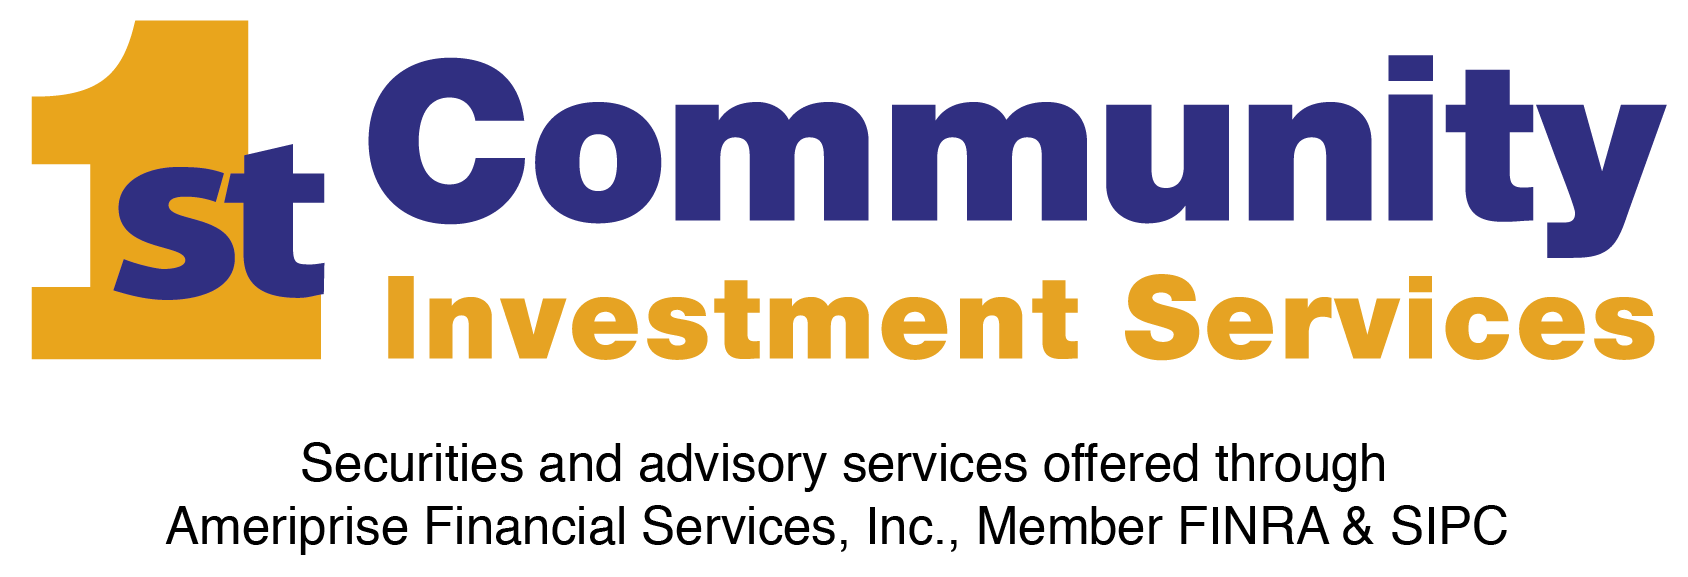 1st Community Investment Services